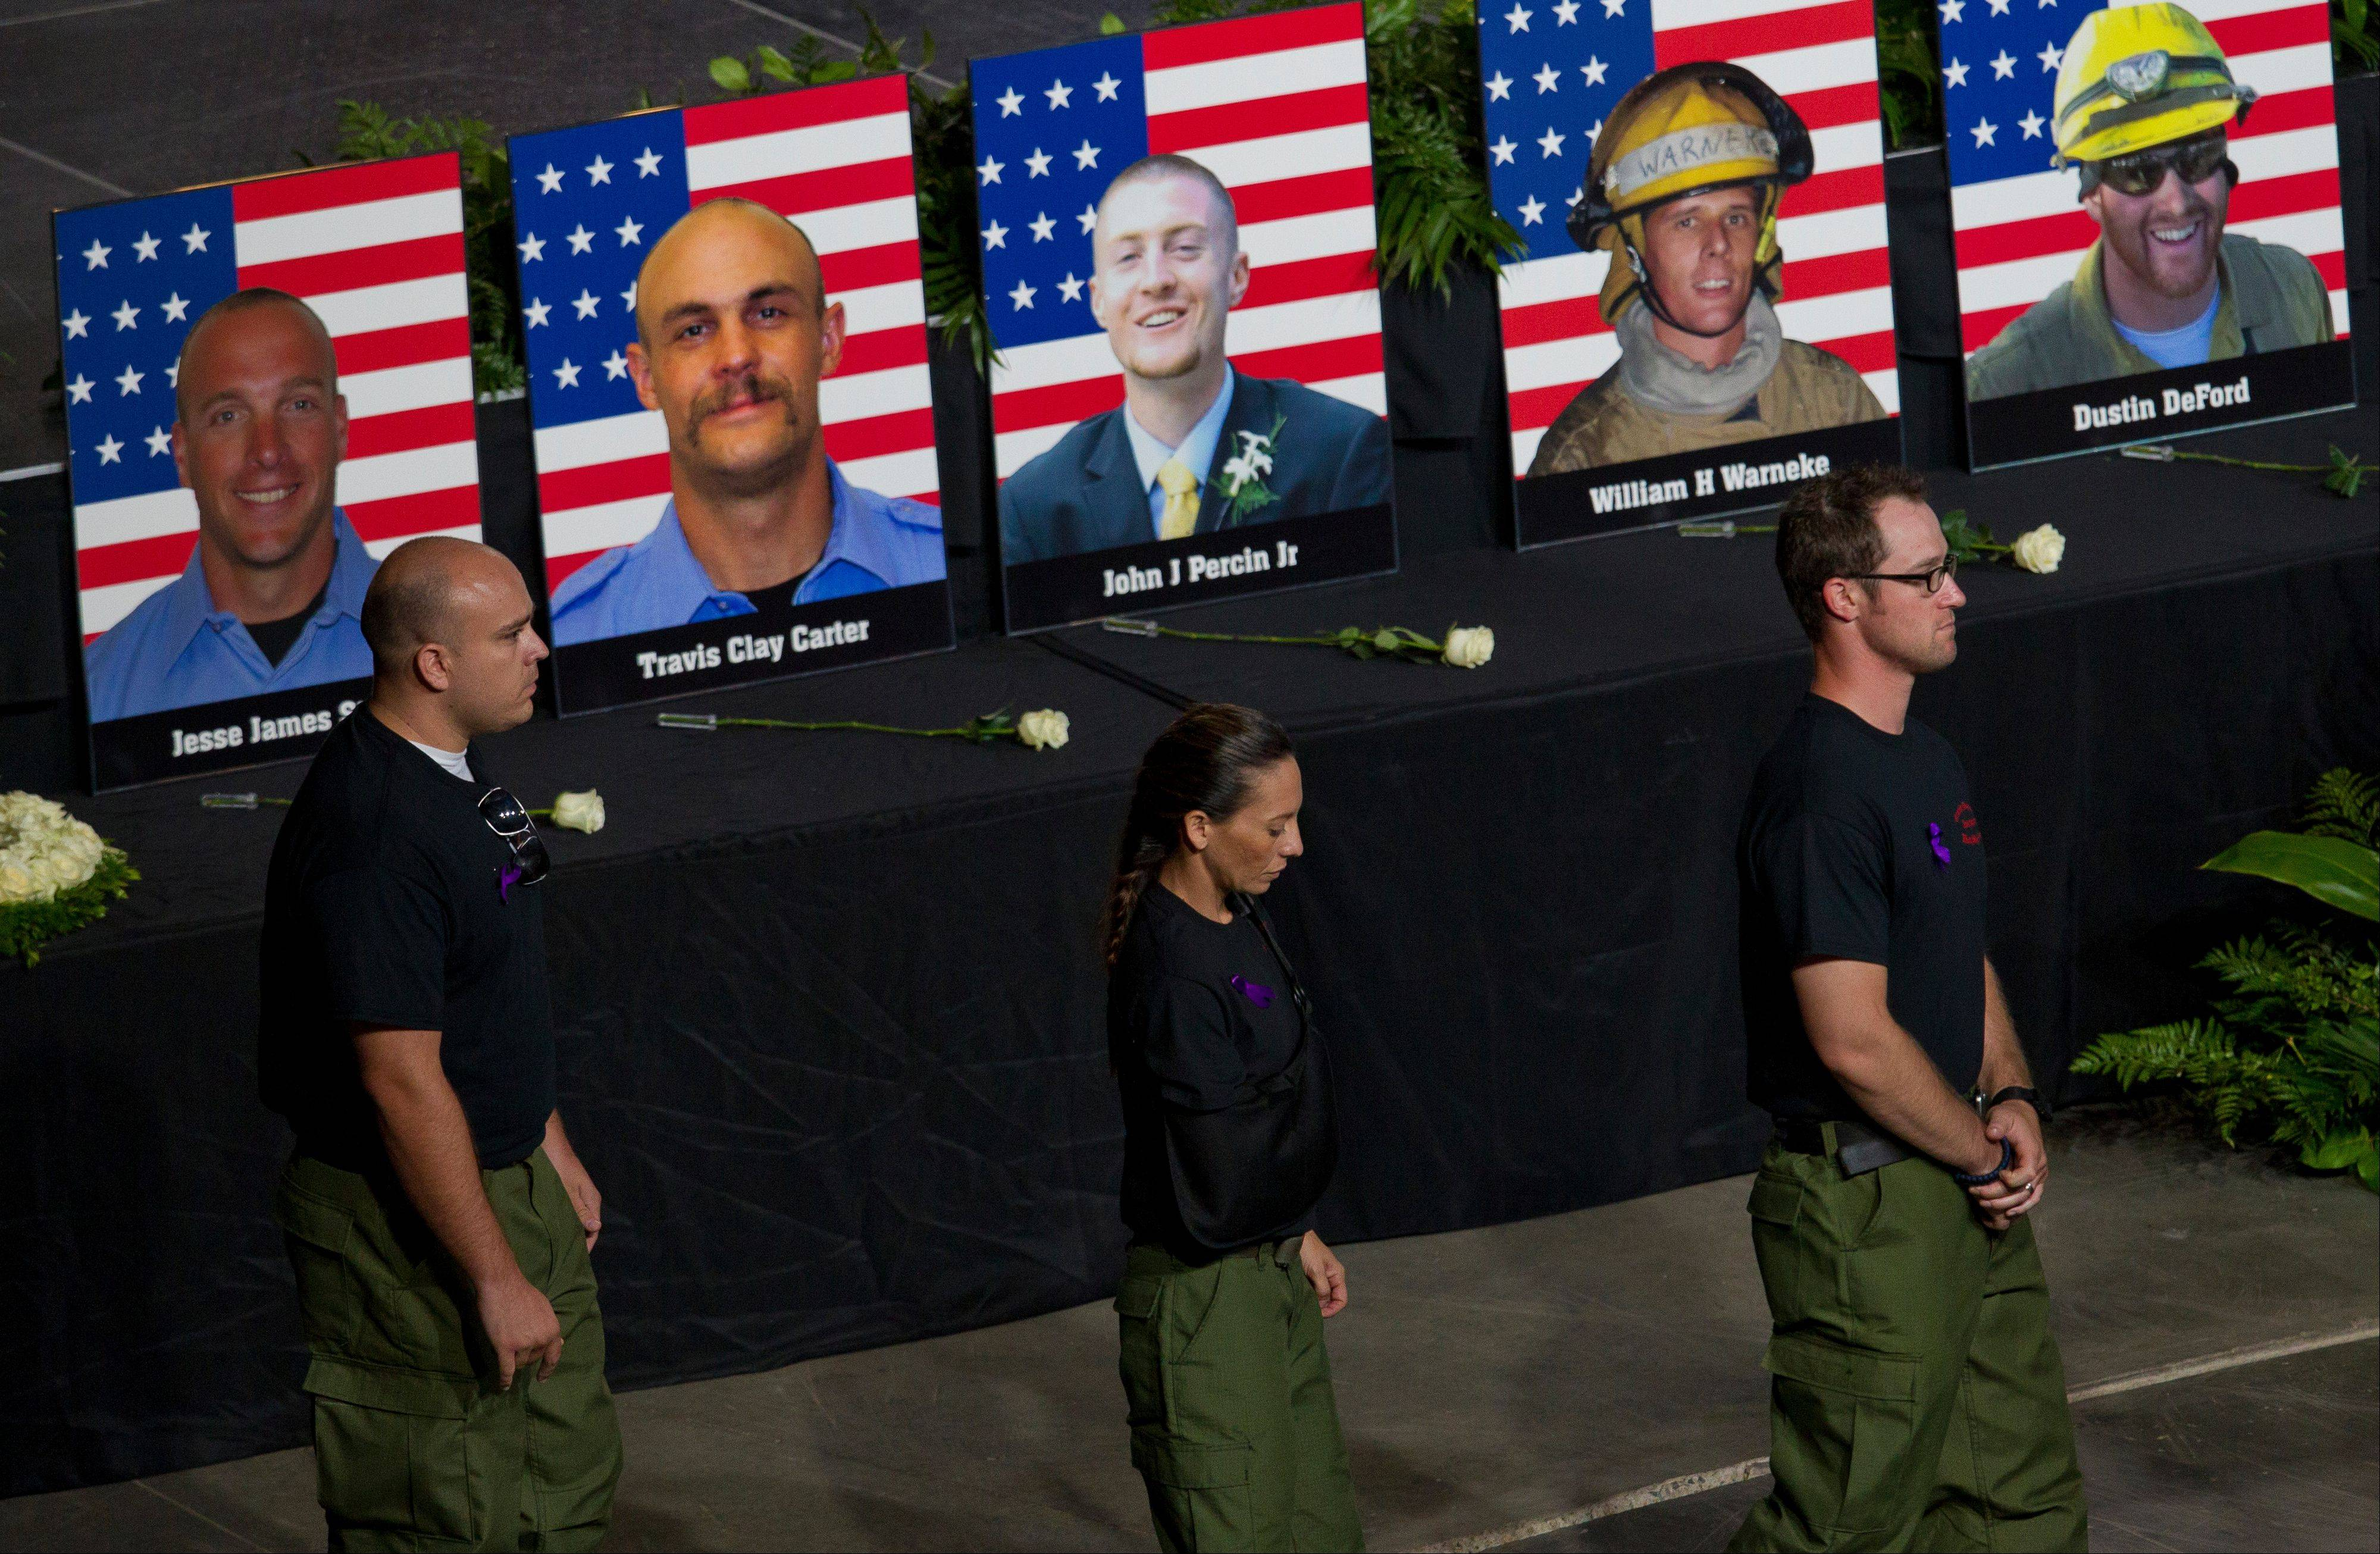 Former Granite Mountain Hotshot firefighters walk past photos of the 19 fallen firefighters during a memorial service at Tim's Toyota Center in Prescott Valley, Ariz. on Tuesday, July 9, 2013.